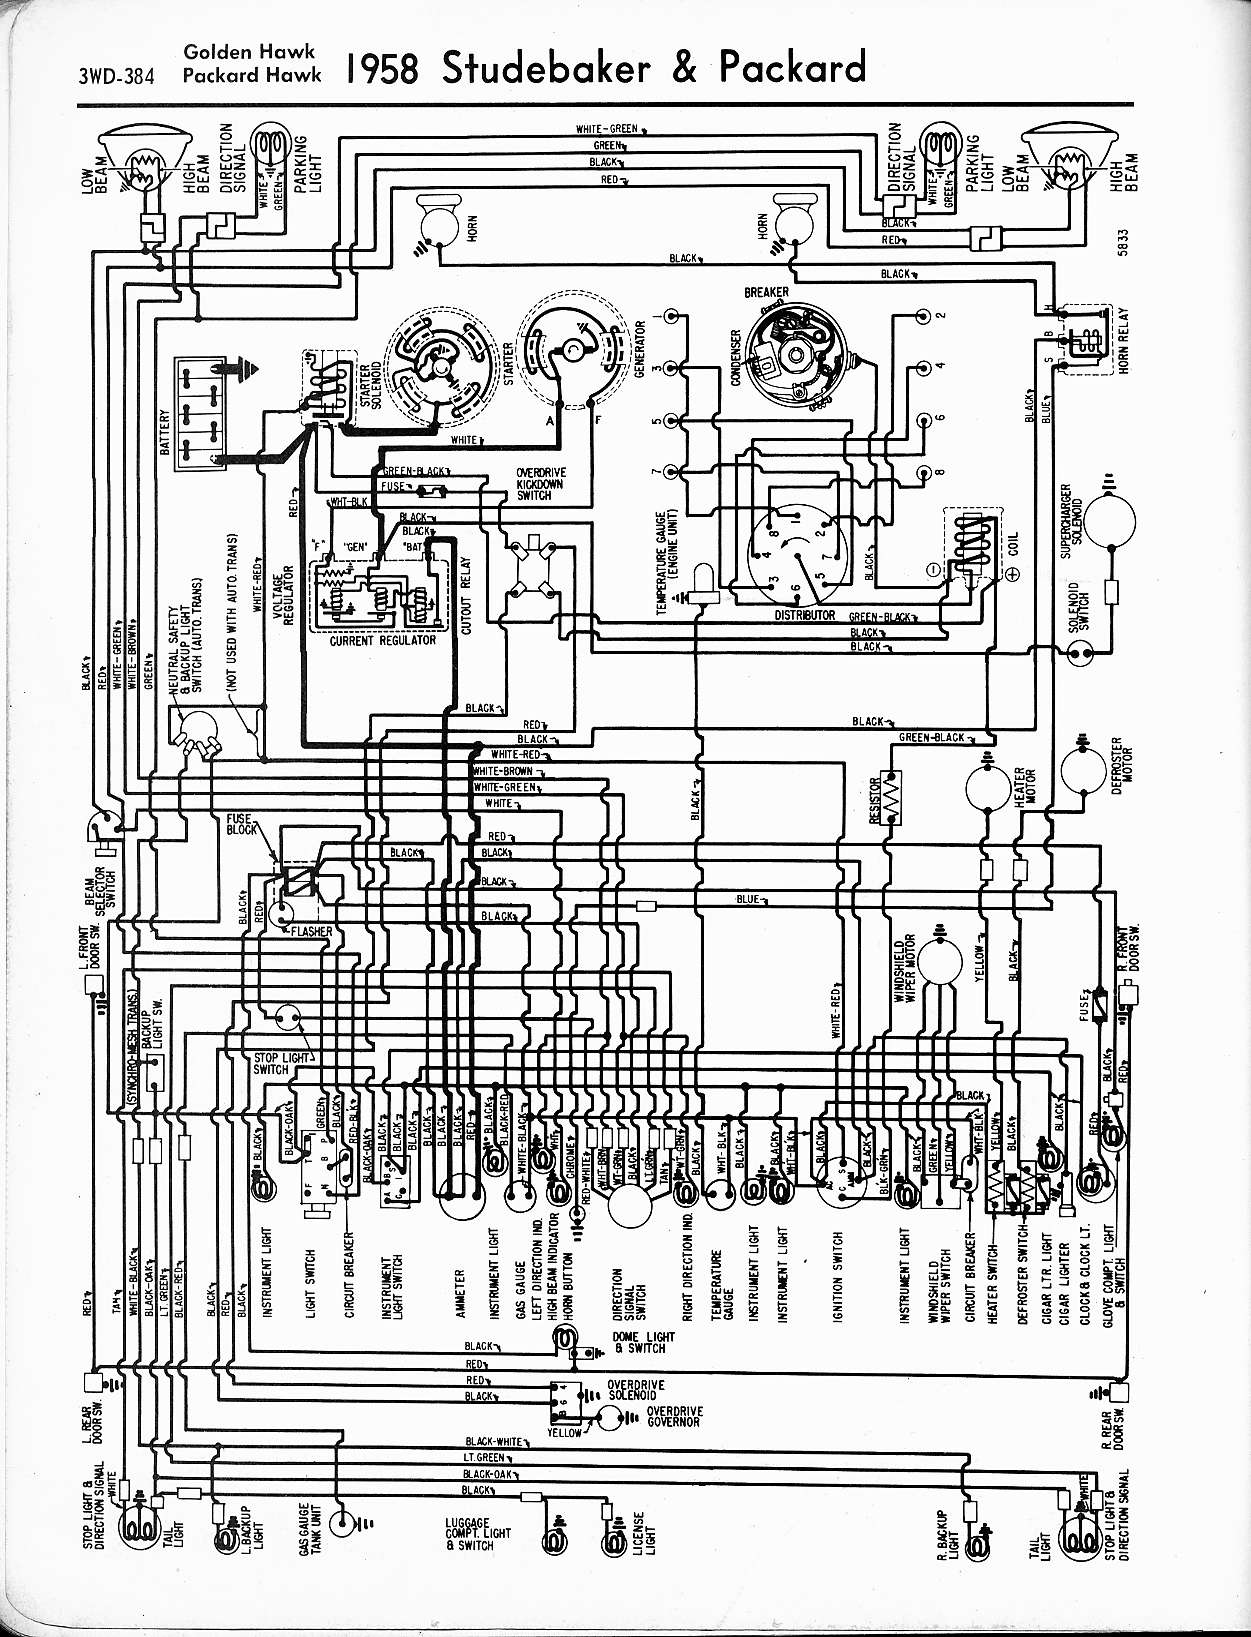 studebaker wiring diagrams the old car manual project mercedes radio wiring harness thesamba com type 1 wiring diagrams